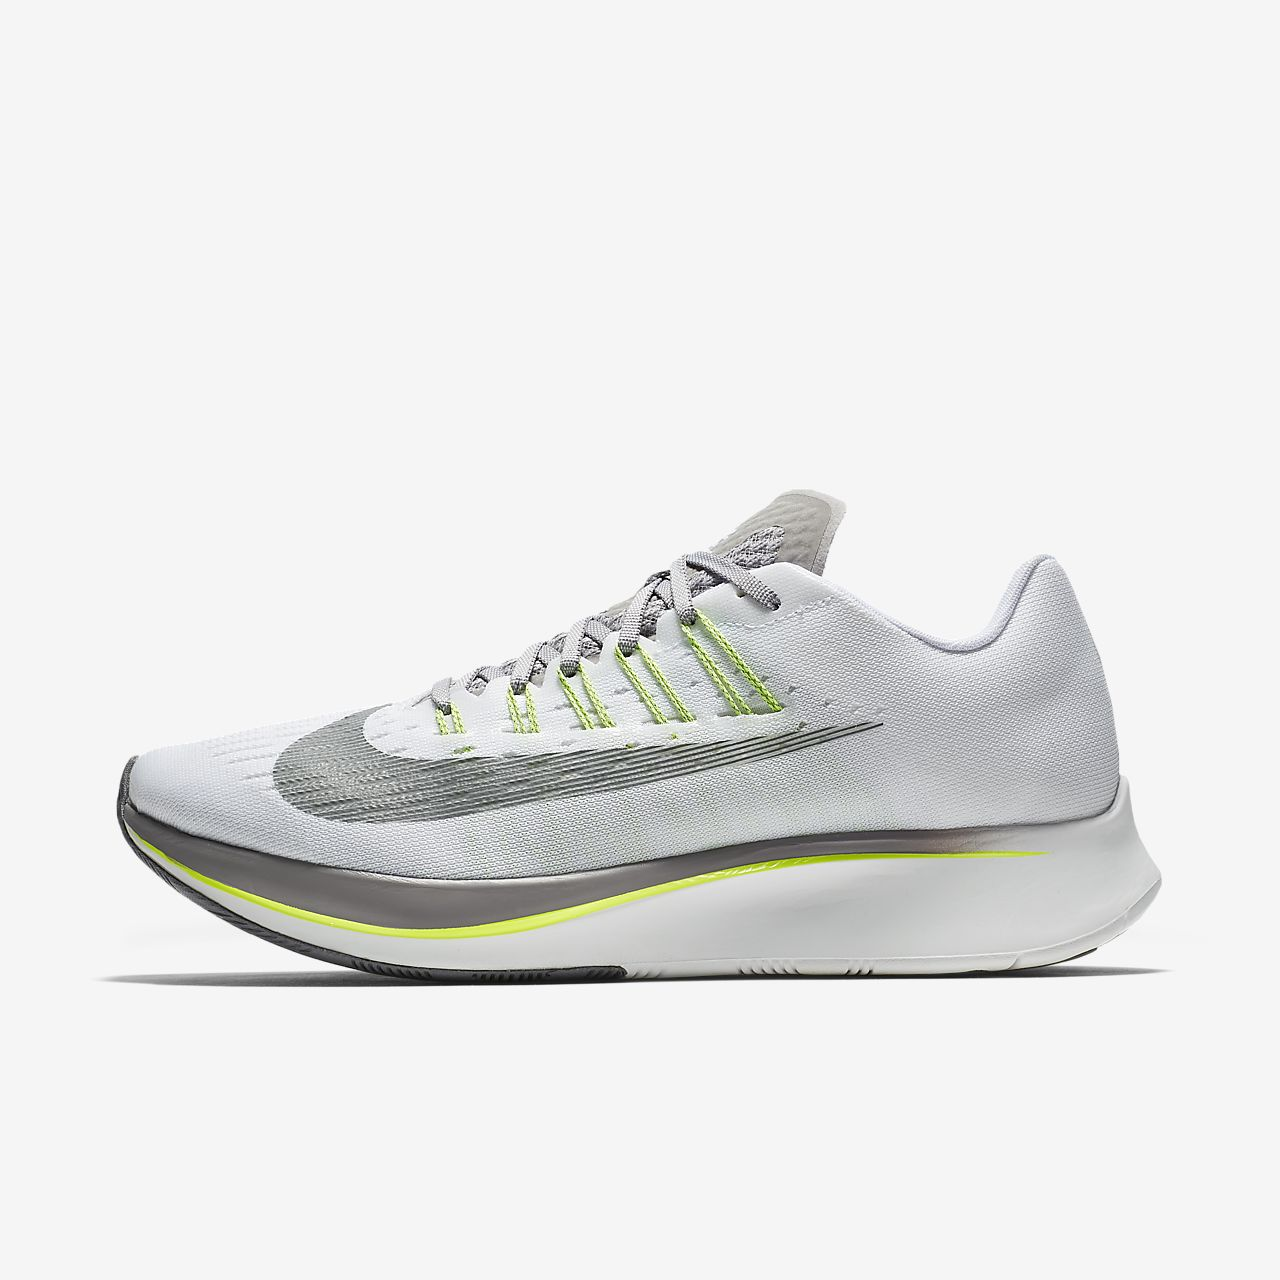 81b310d5b9f1 Nike Zoom Fly Men s Running Shoe. Nike.com